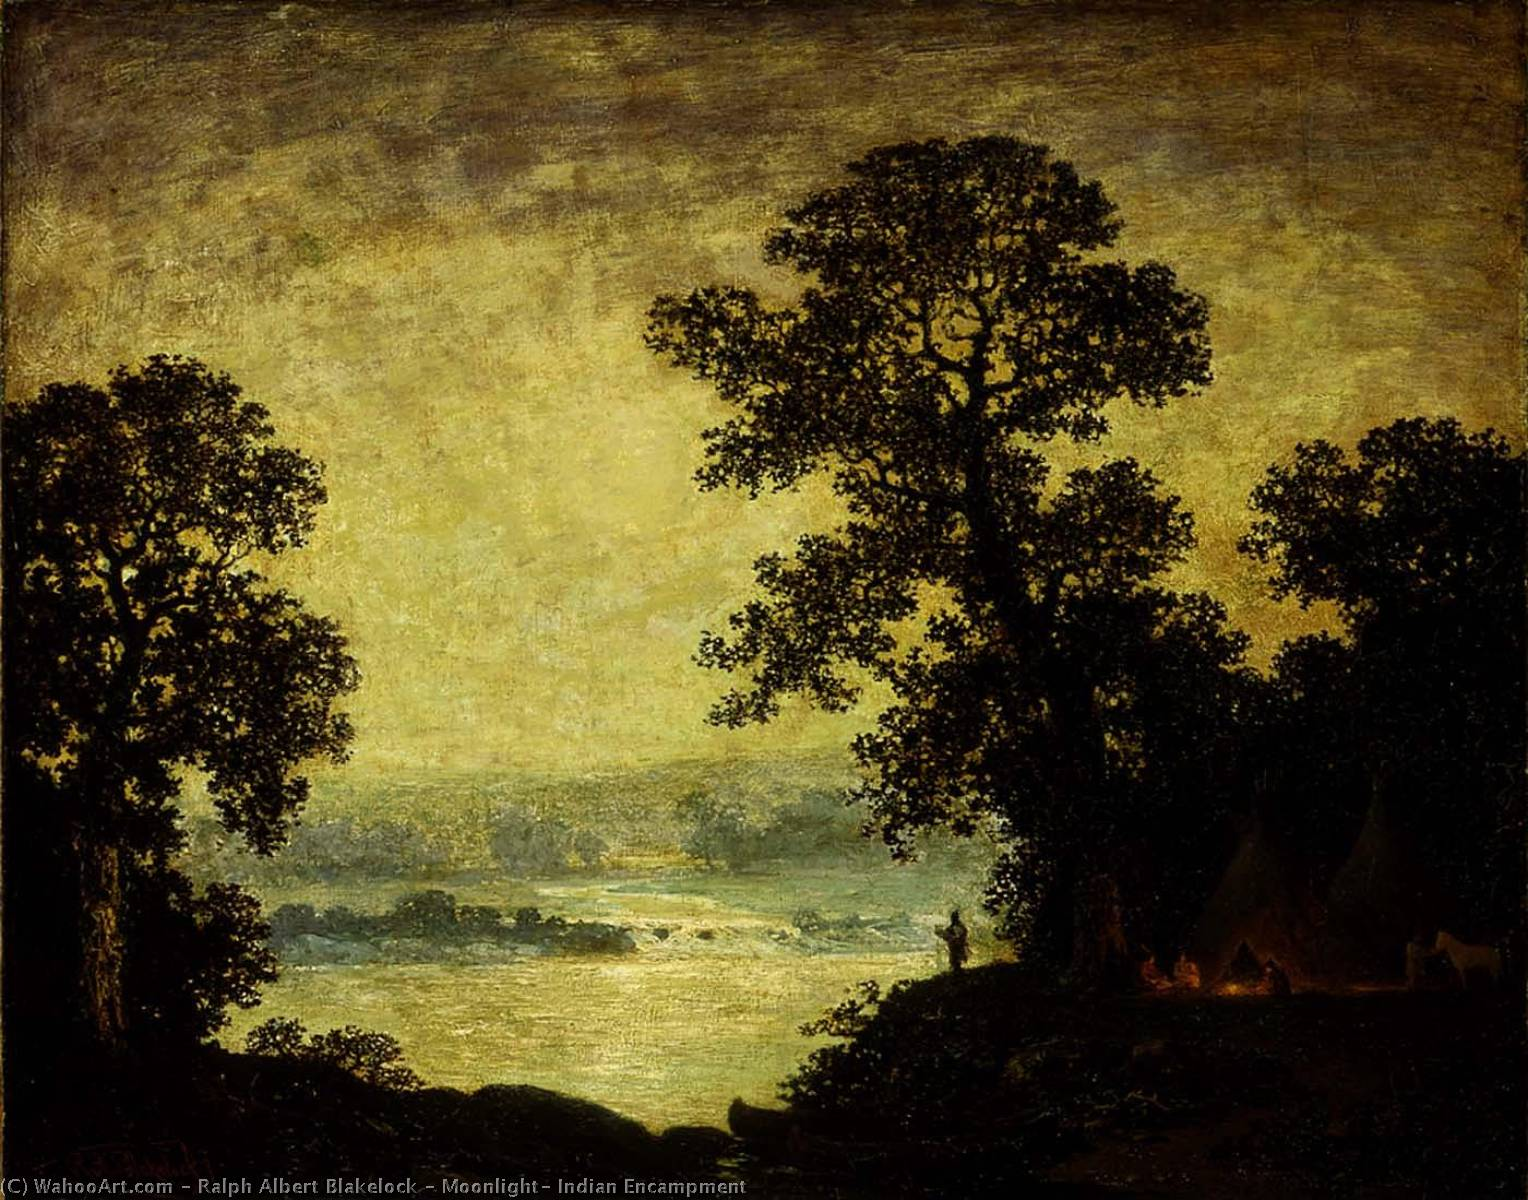 Order Paintings Reproductions | Moonlight, Indian Encampment, 1889 by Ralph Albert Blakelock (1847-1919, United States) | WahooArt.com